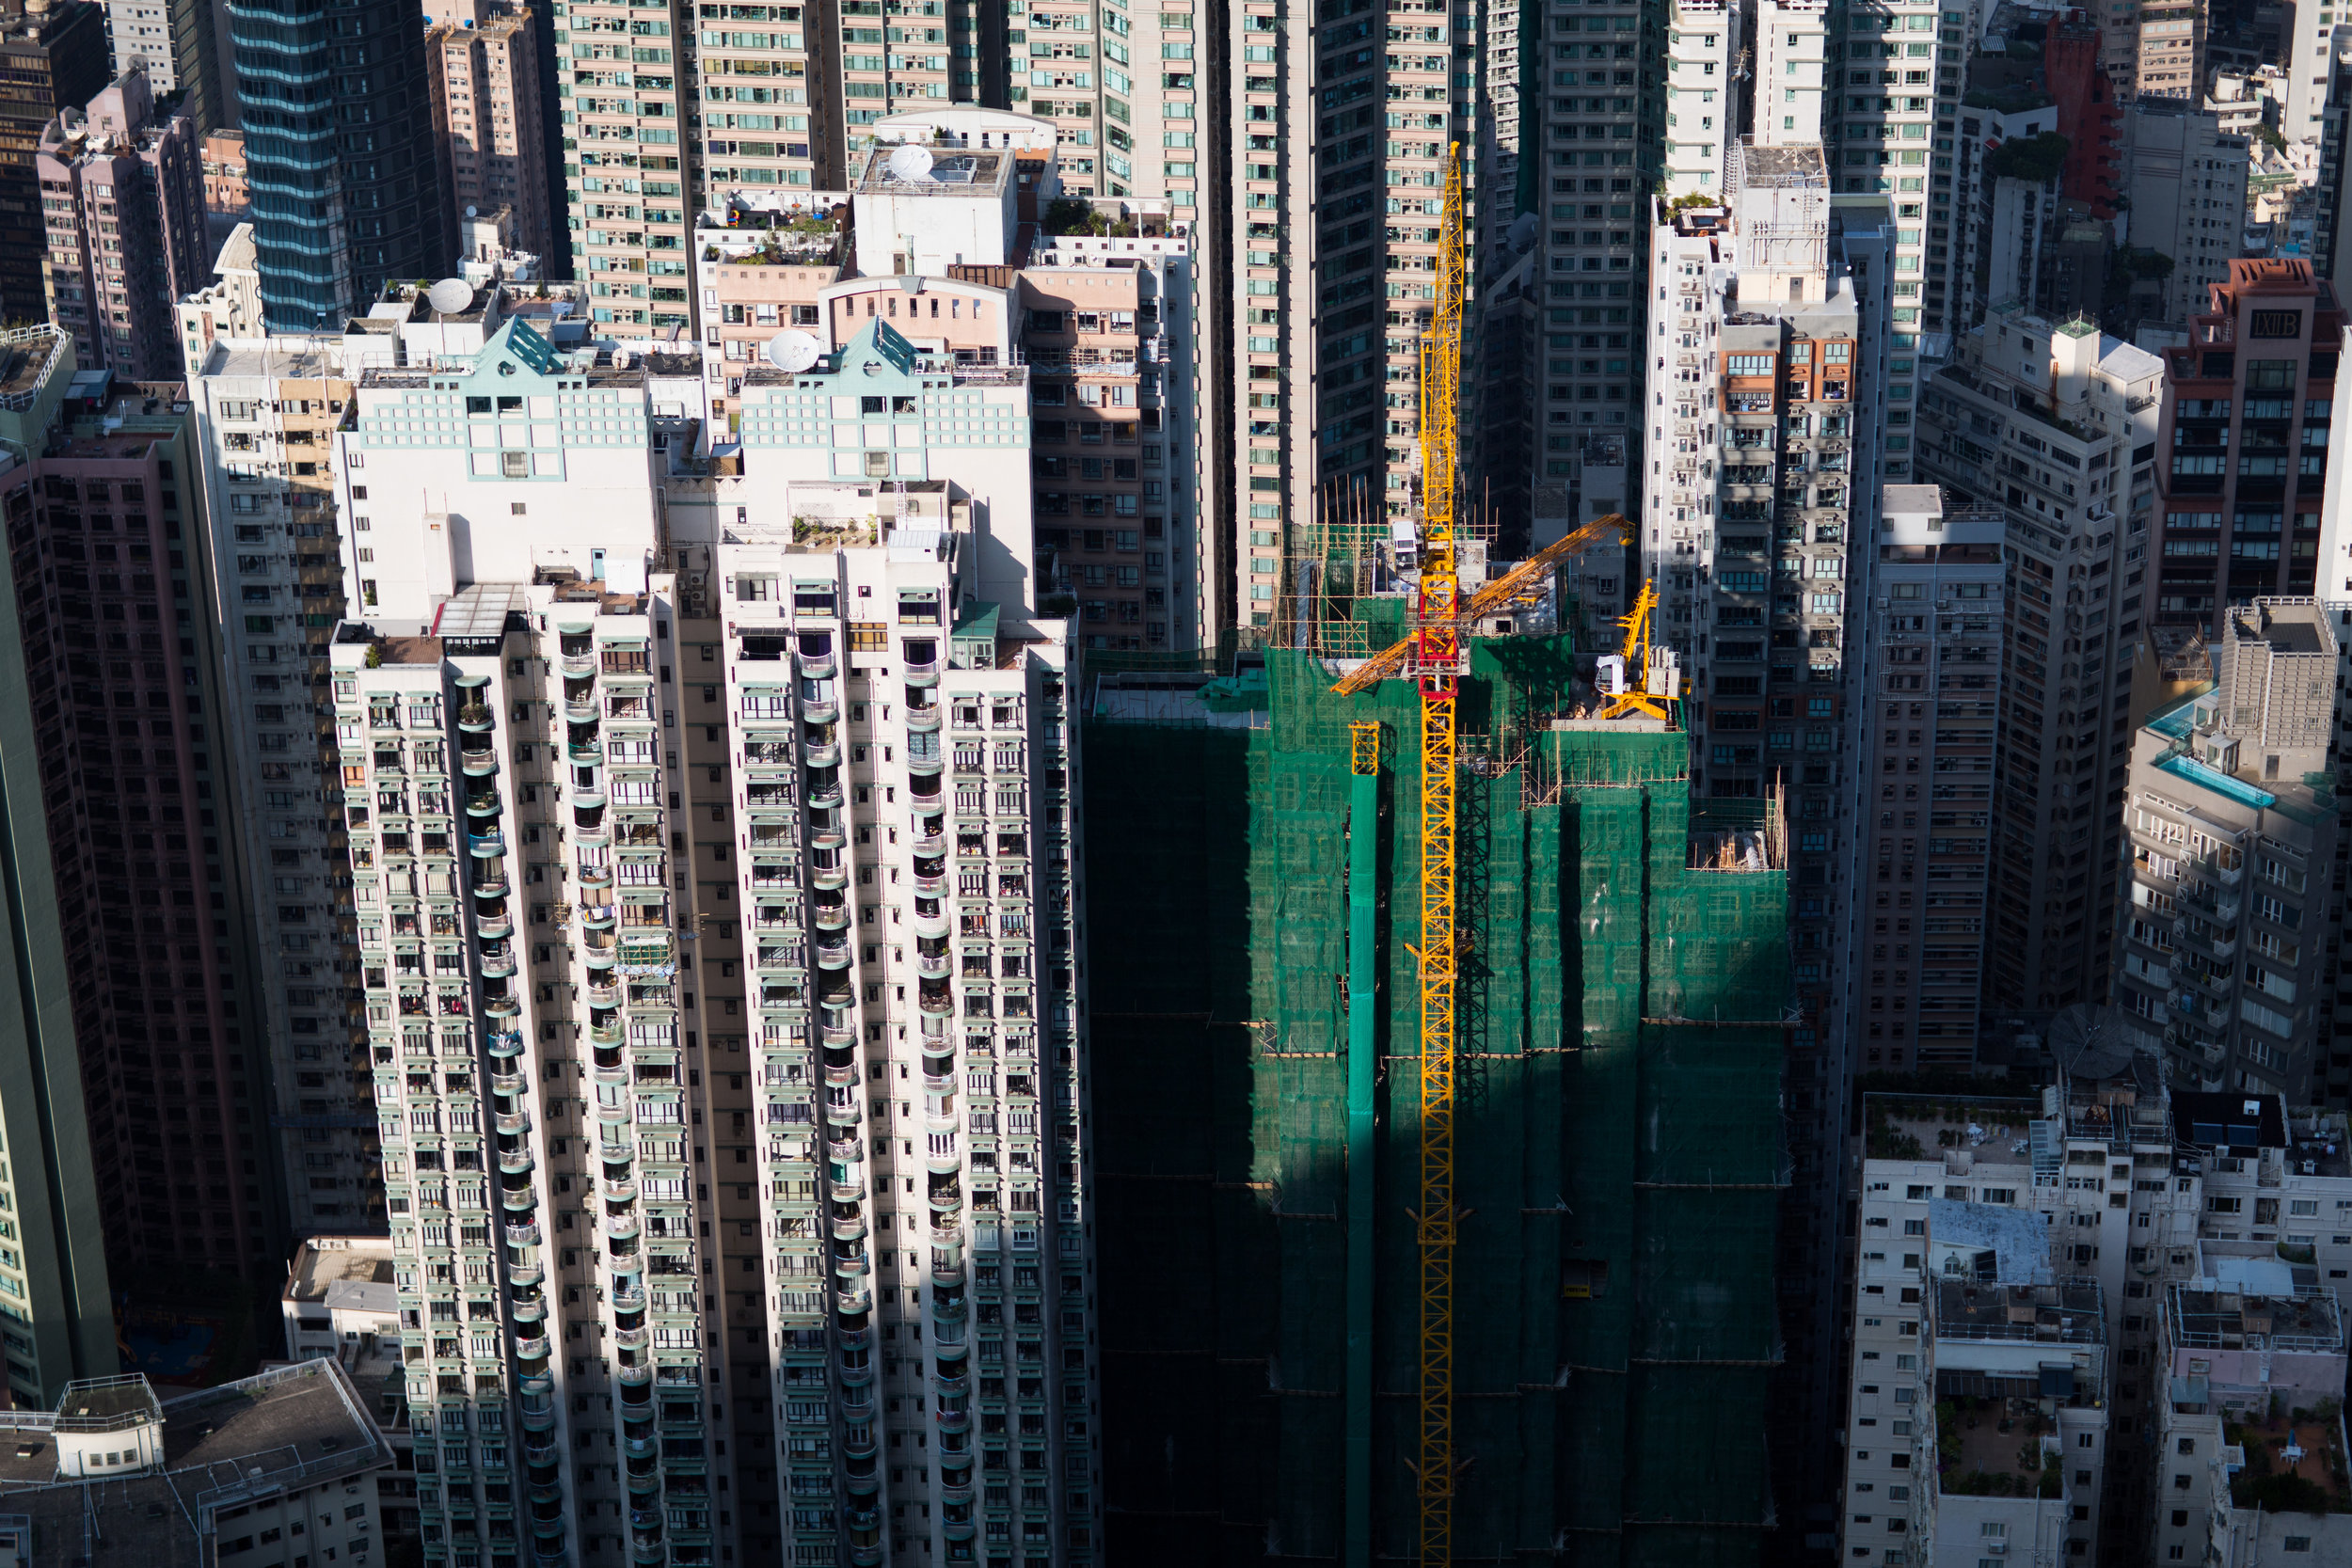 Hong Kong Skyscrapers and Construction